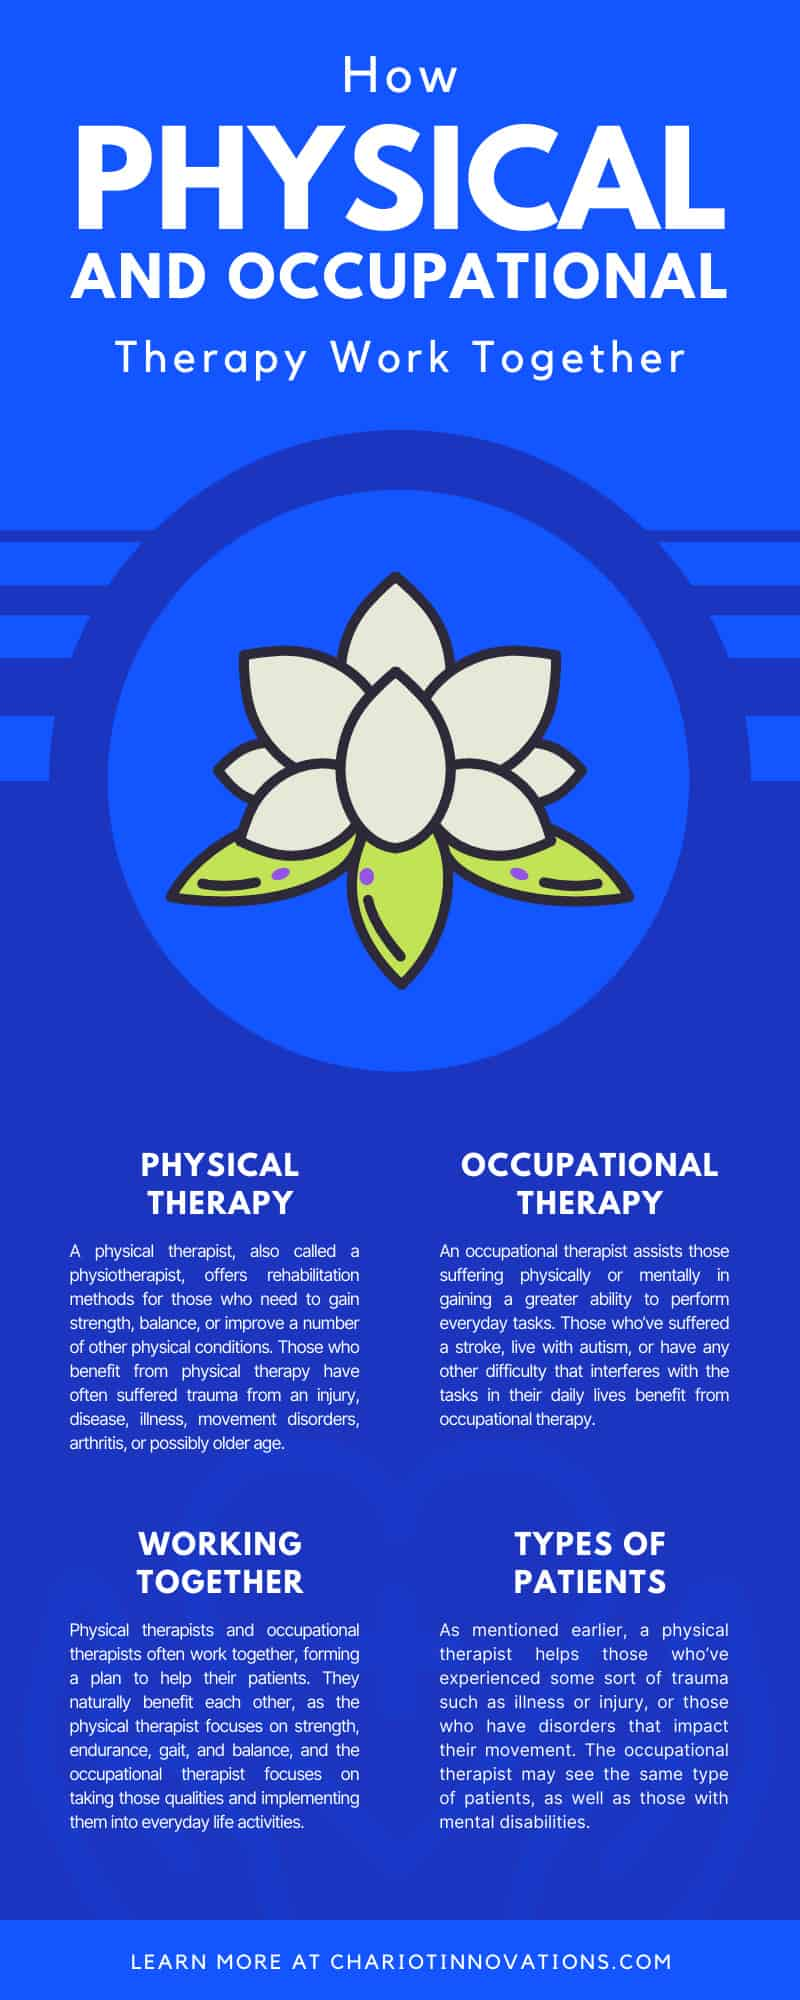 How Physical and Occupational Therapy Work Together